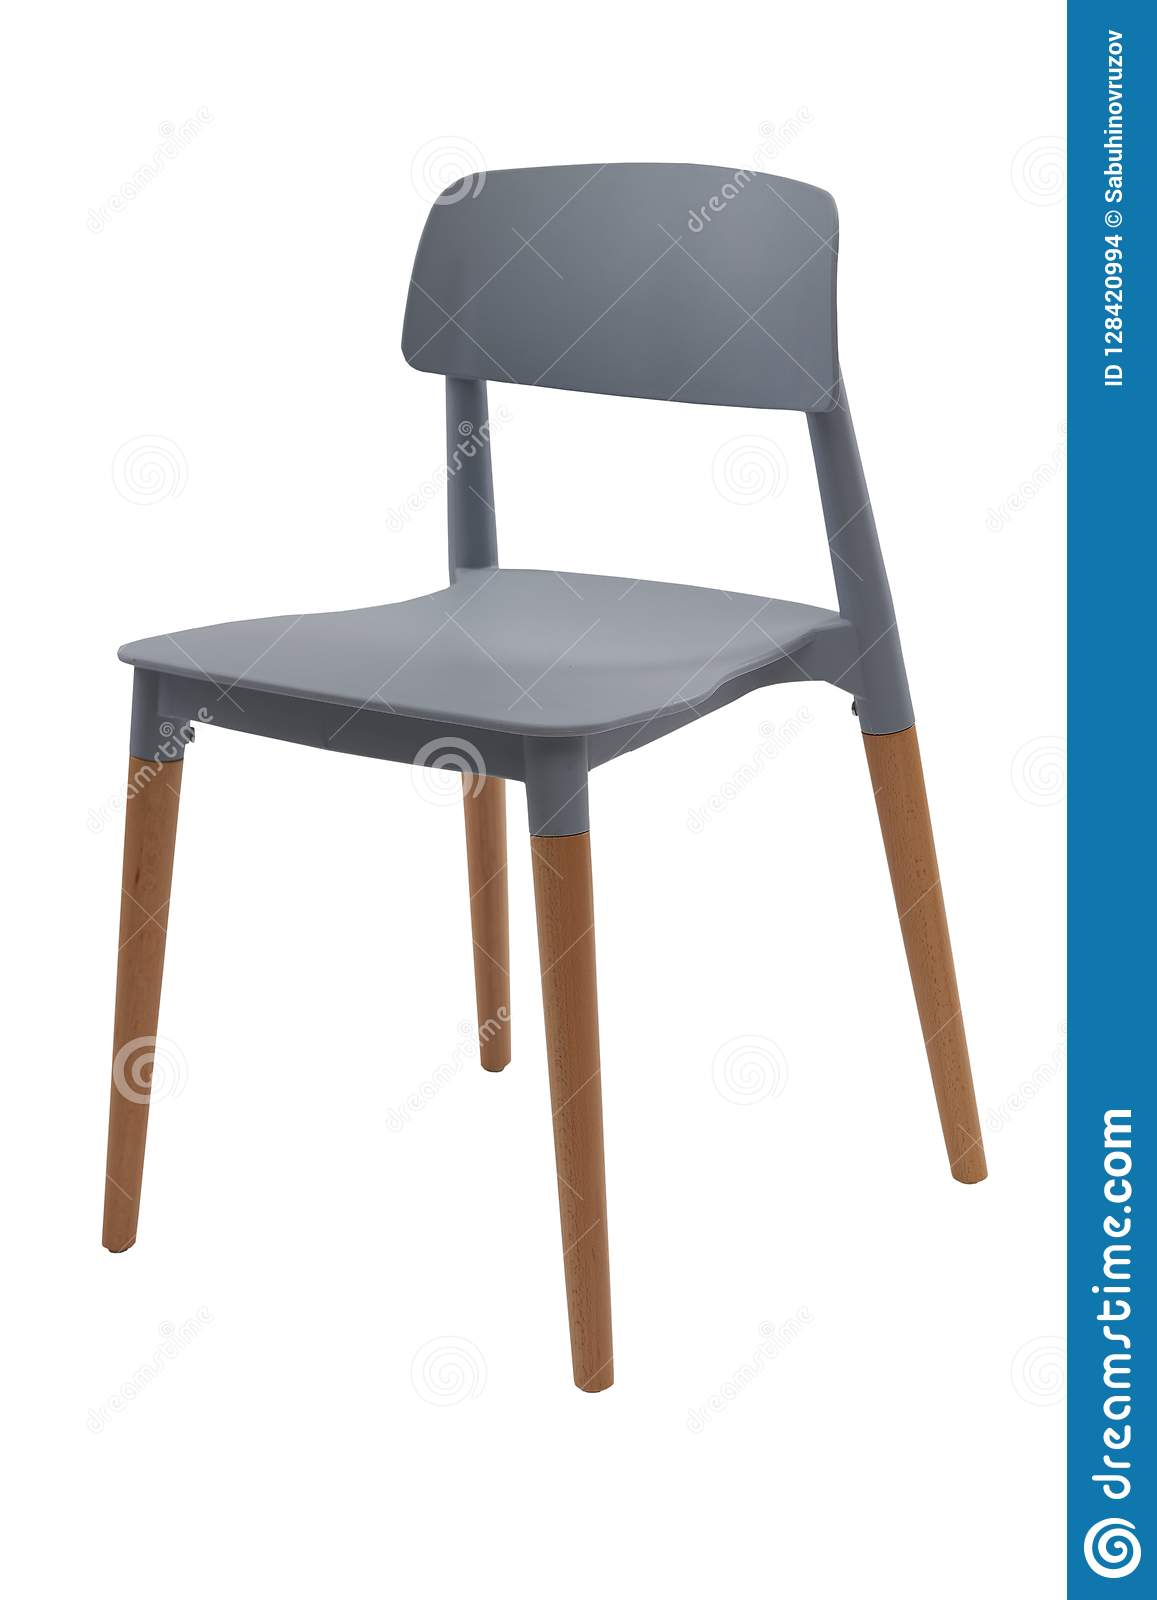 Cool White Plastic Stool With Back Front View Modern Outdoor Ibusinesslaw Wood Chair Design Ideas Ibusinesslaworg